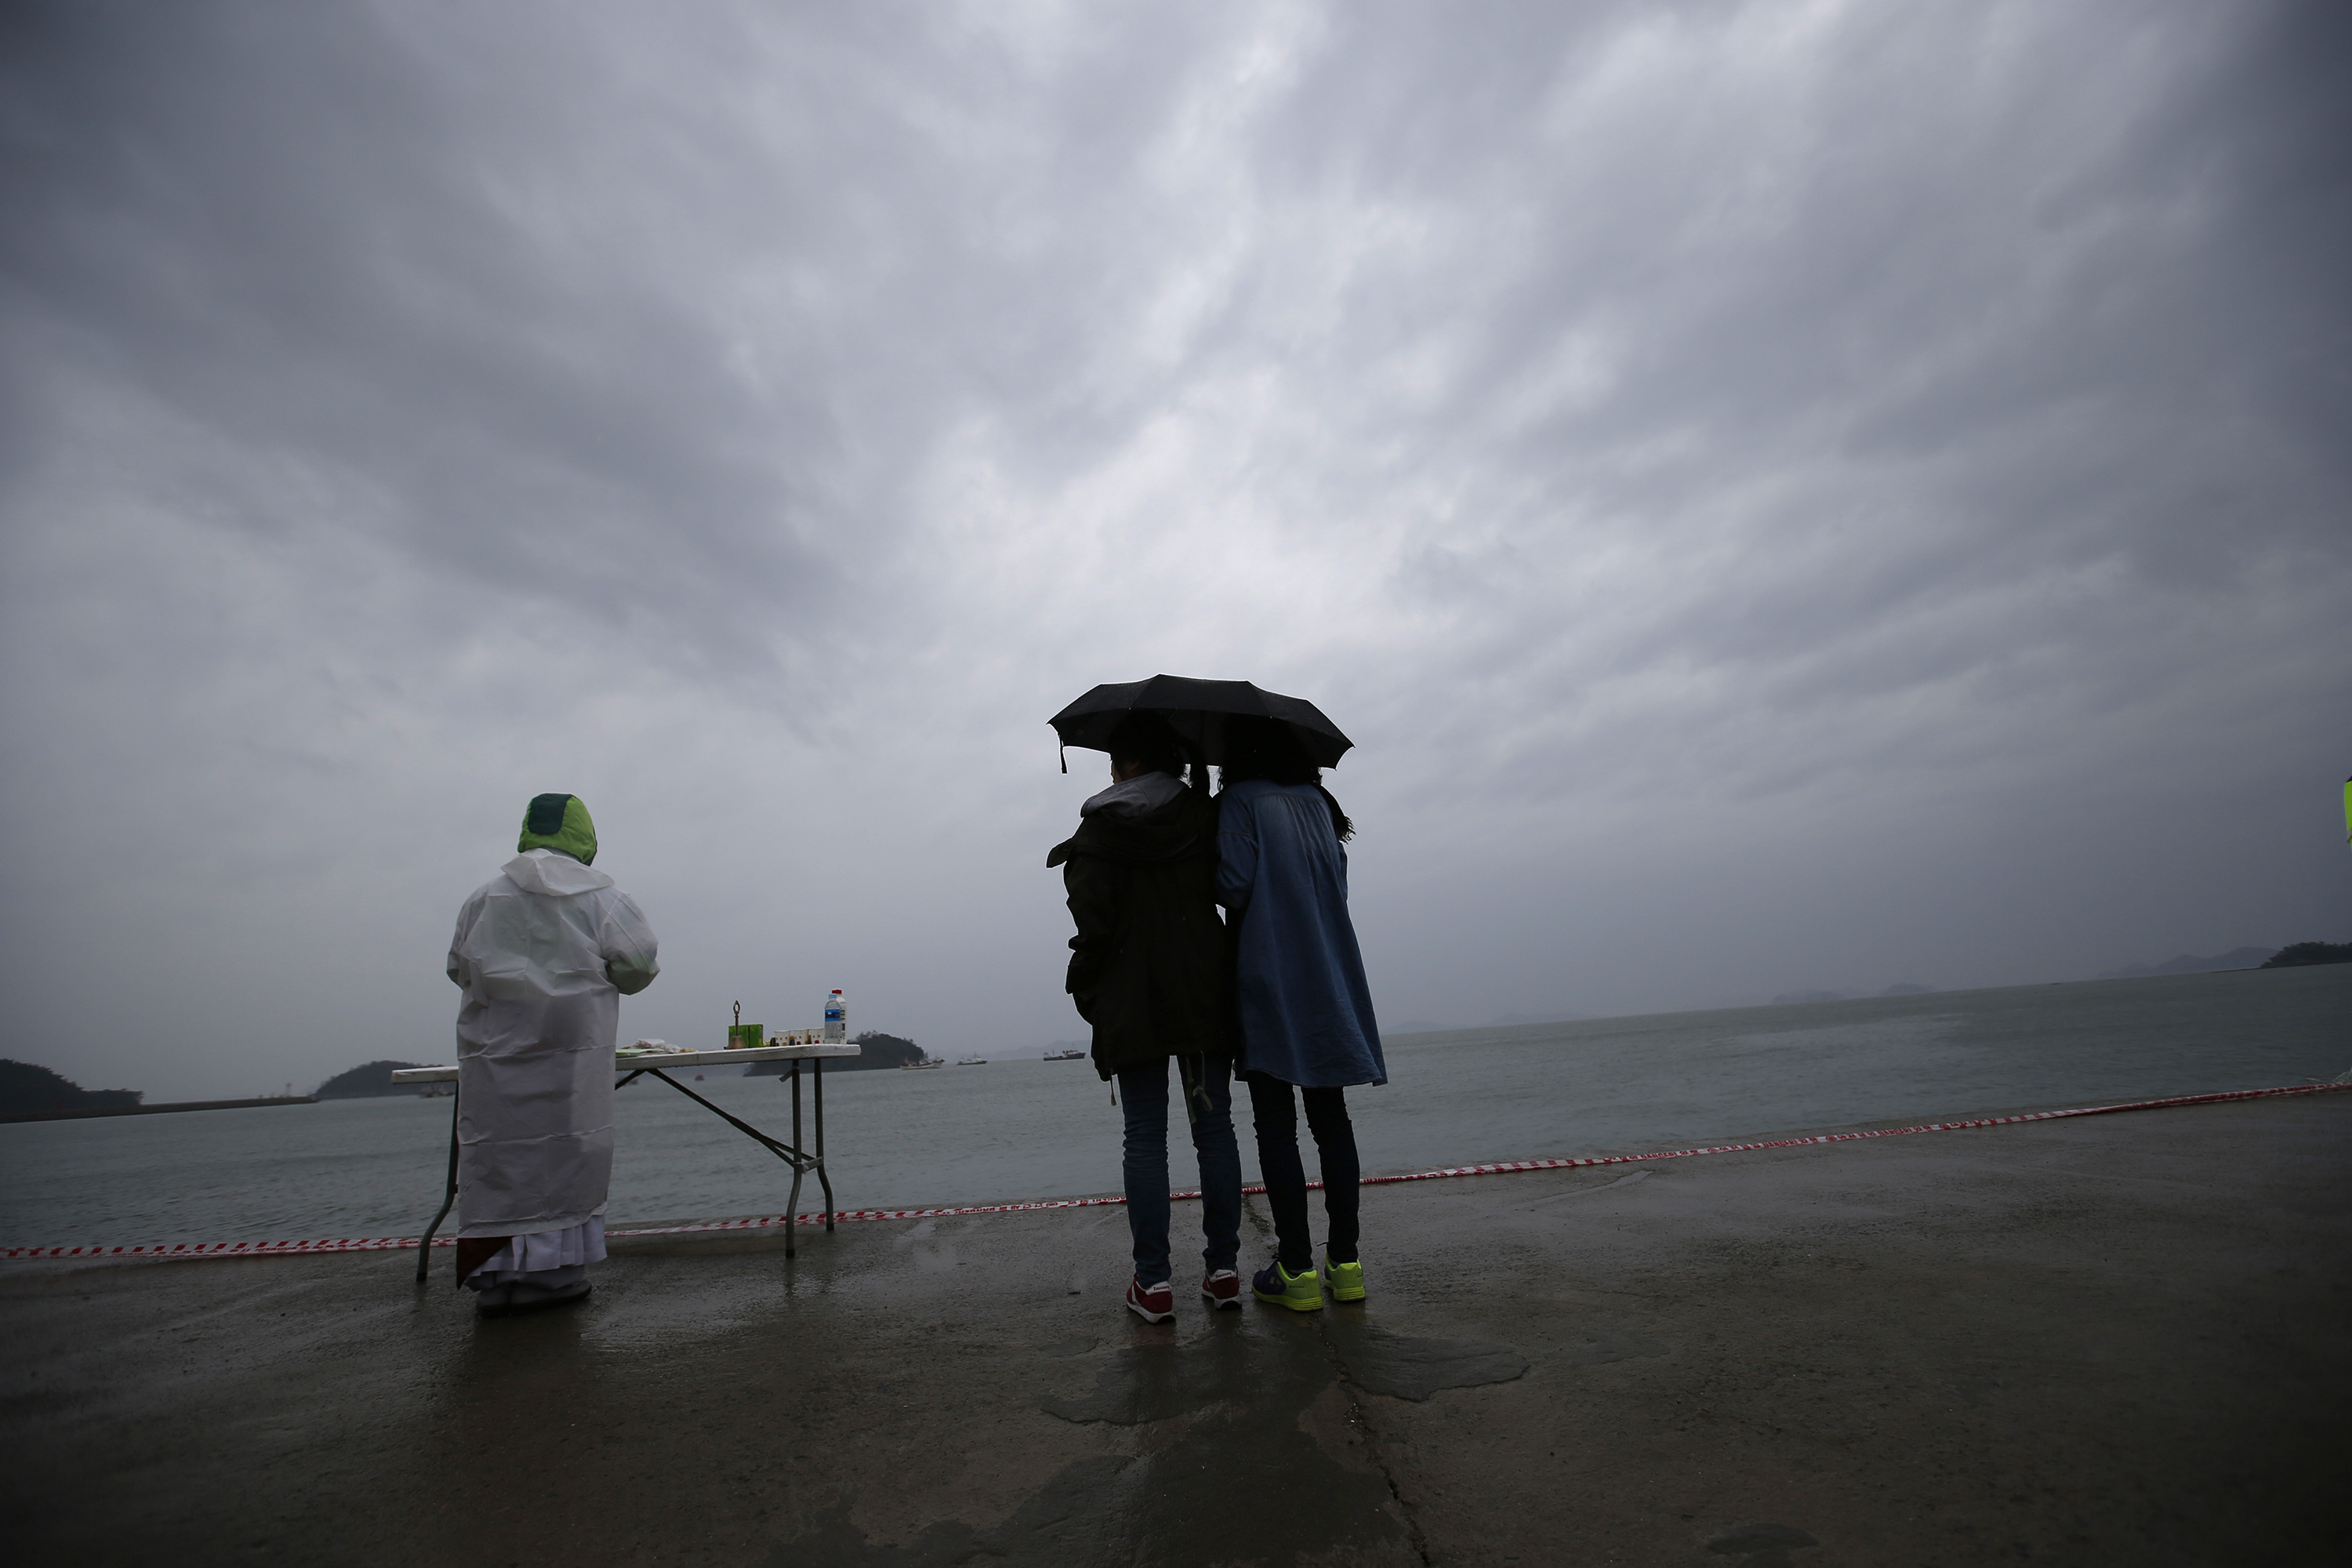 Relatives of a missing passenger onboard the capsized Sewol ferry look at the sea while a Buddhist monk prays for the victims at a port in the rain, where family members wait for news from the search and rescue team on April 27, 2014.